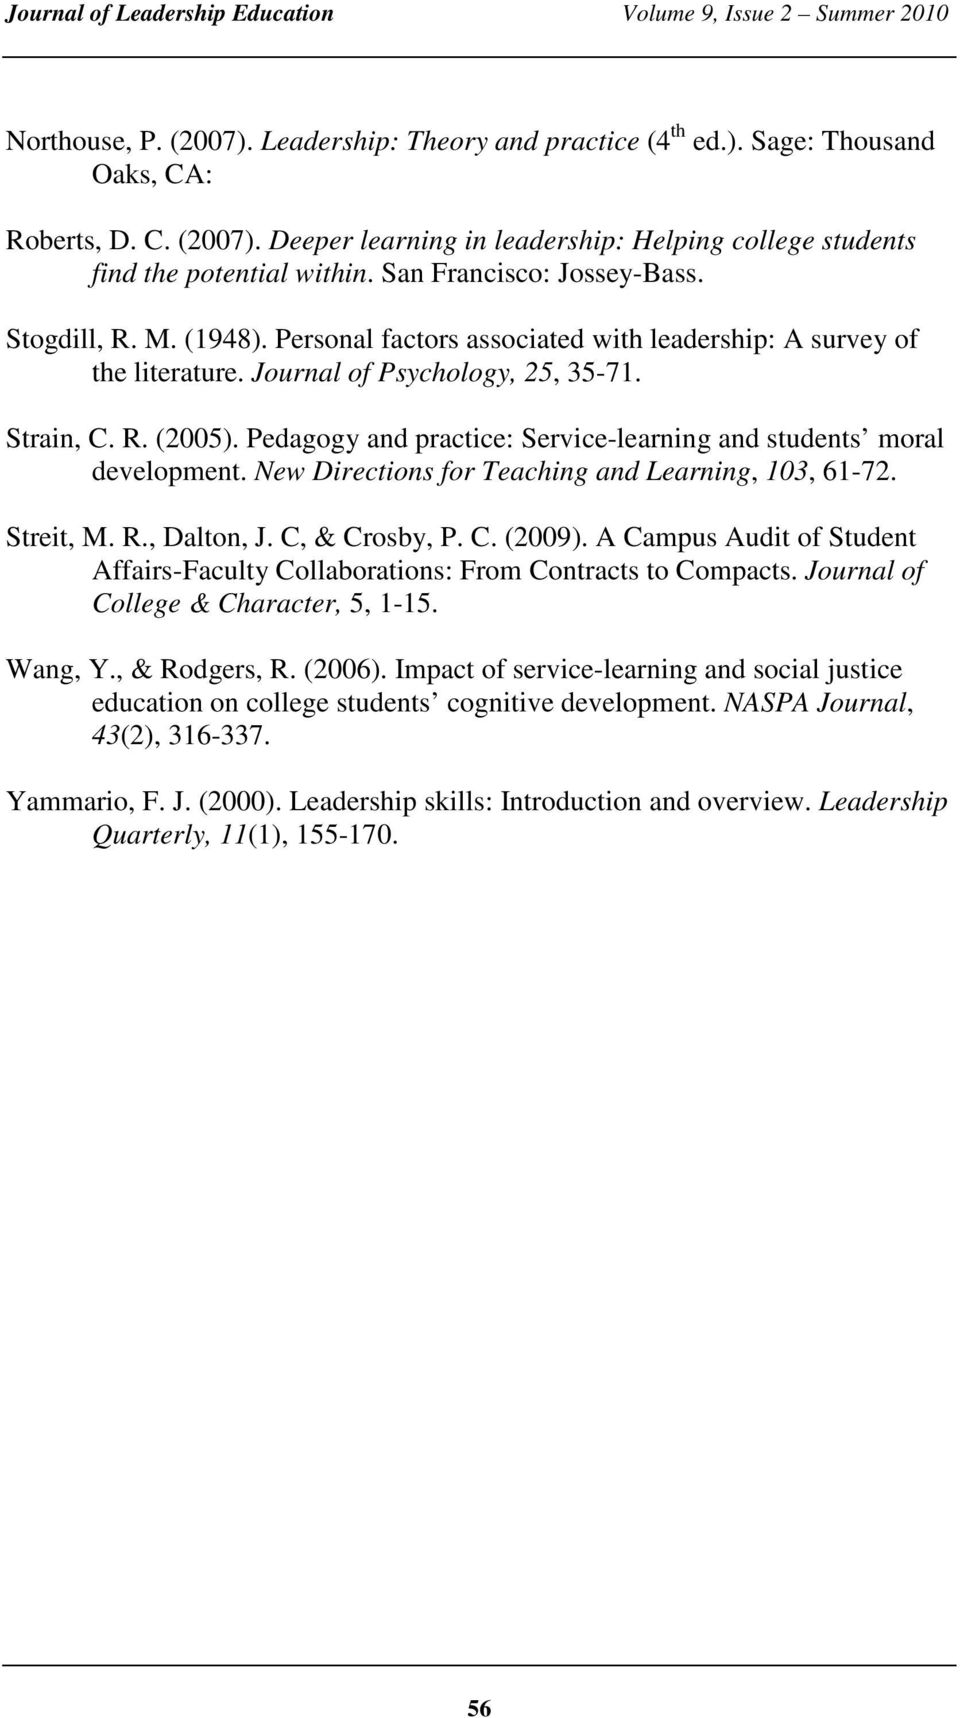 Pedagogy and practice: Service-learning and students moral development. New Directions for Teaching and Learning, 103, 61-72. Streit, M. R., Dalton, J. C, & Crosby, P. C. (2009).